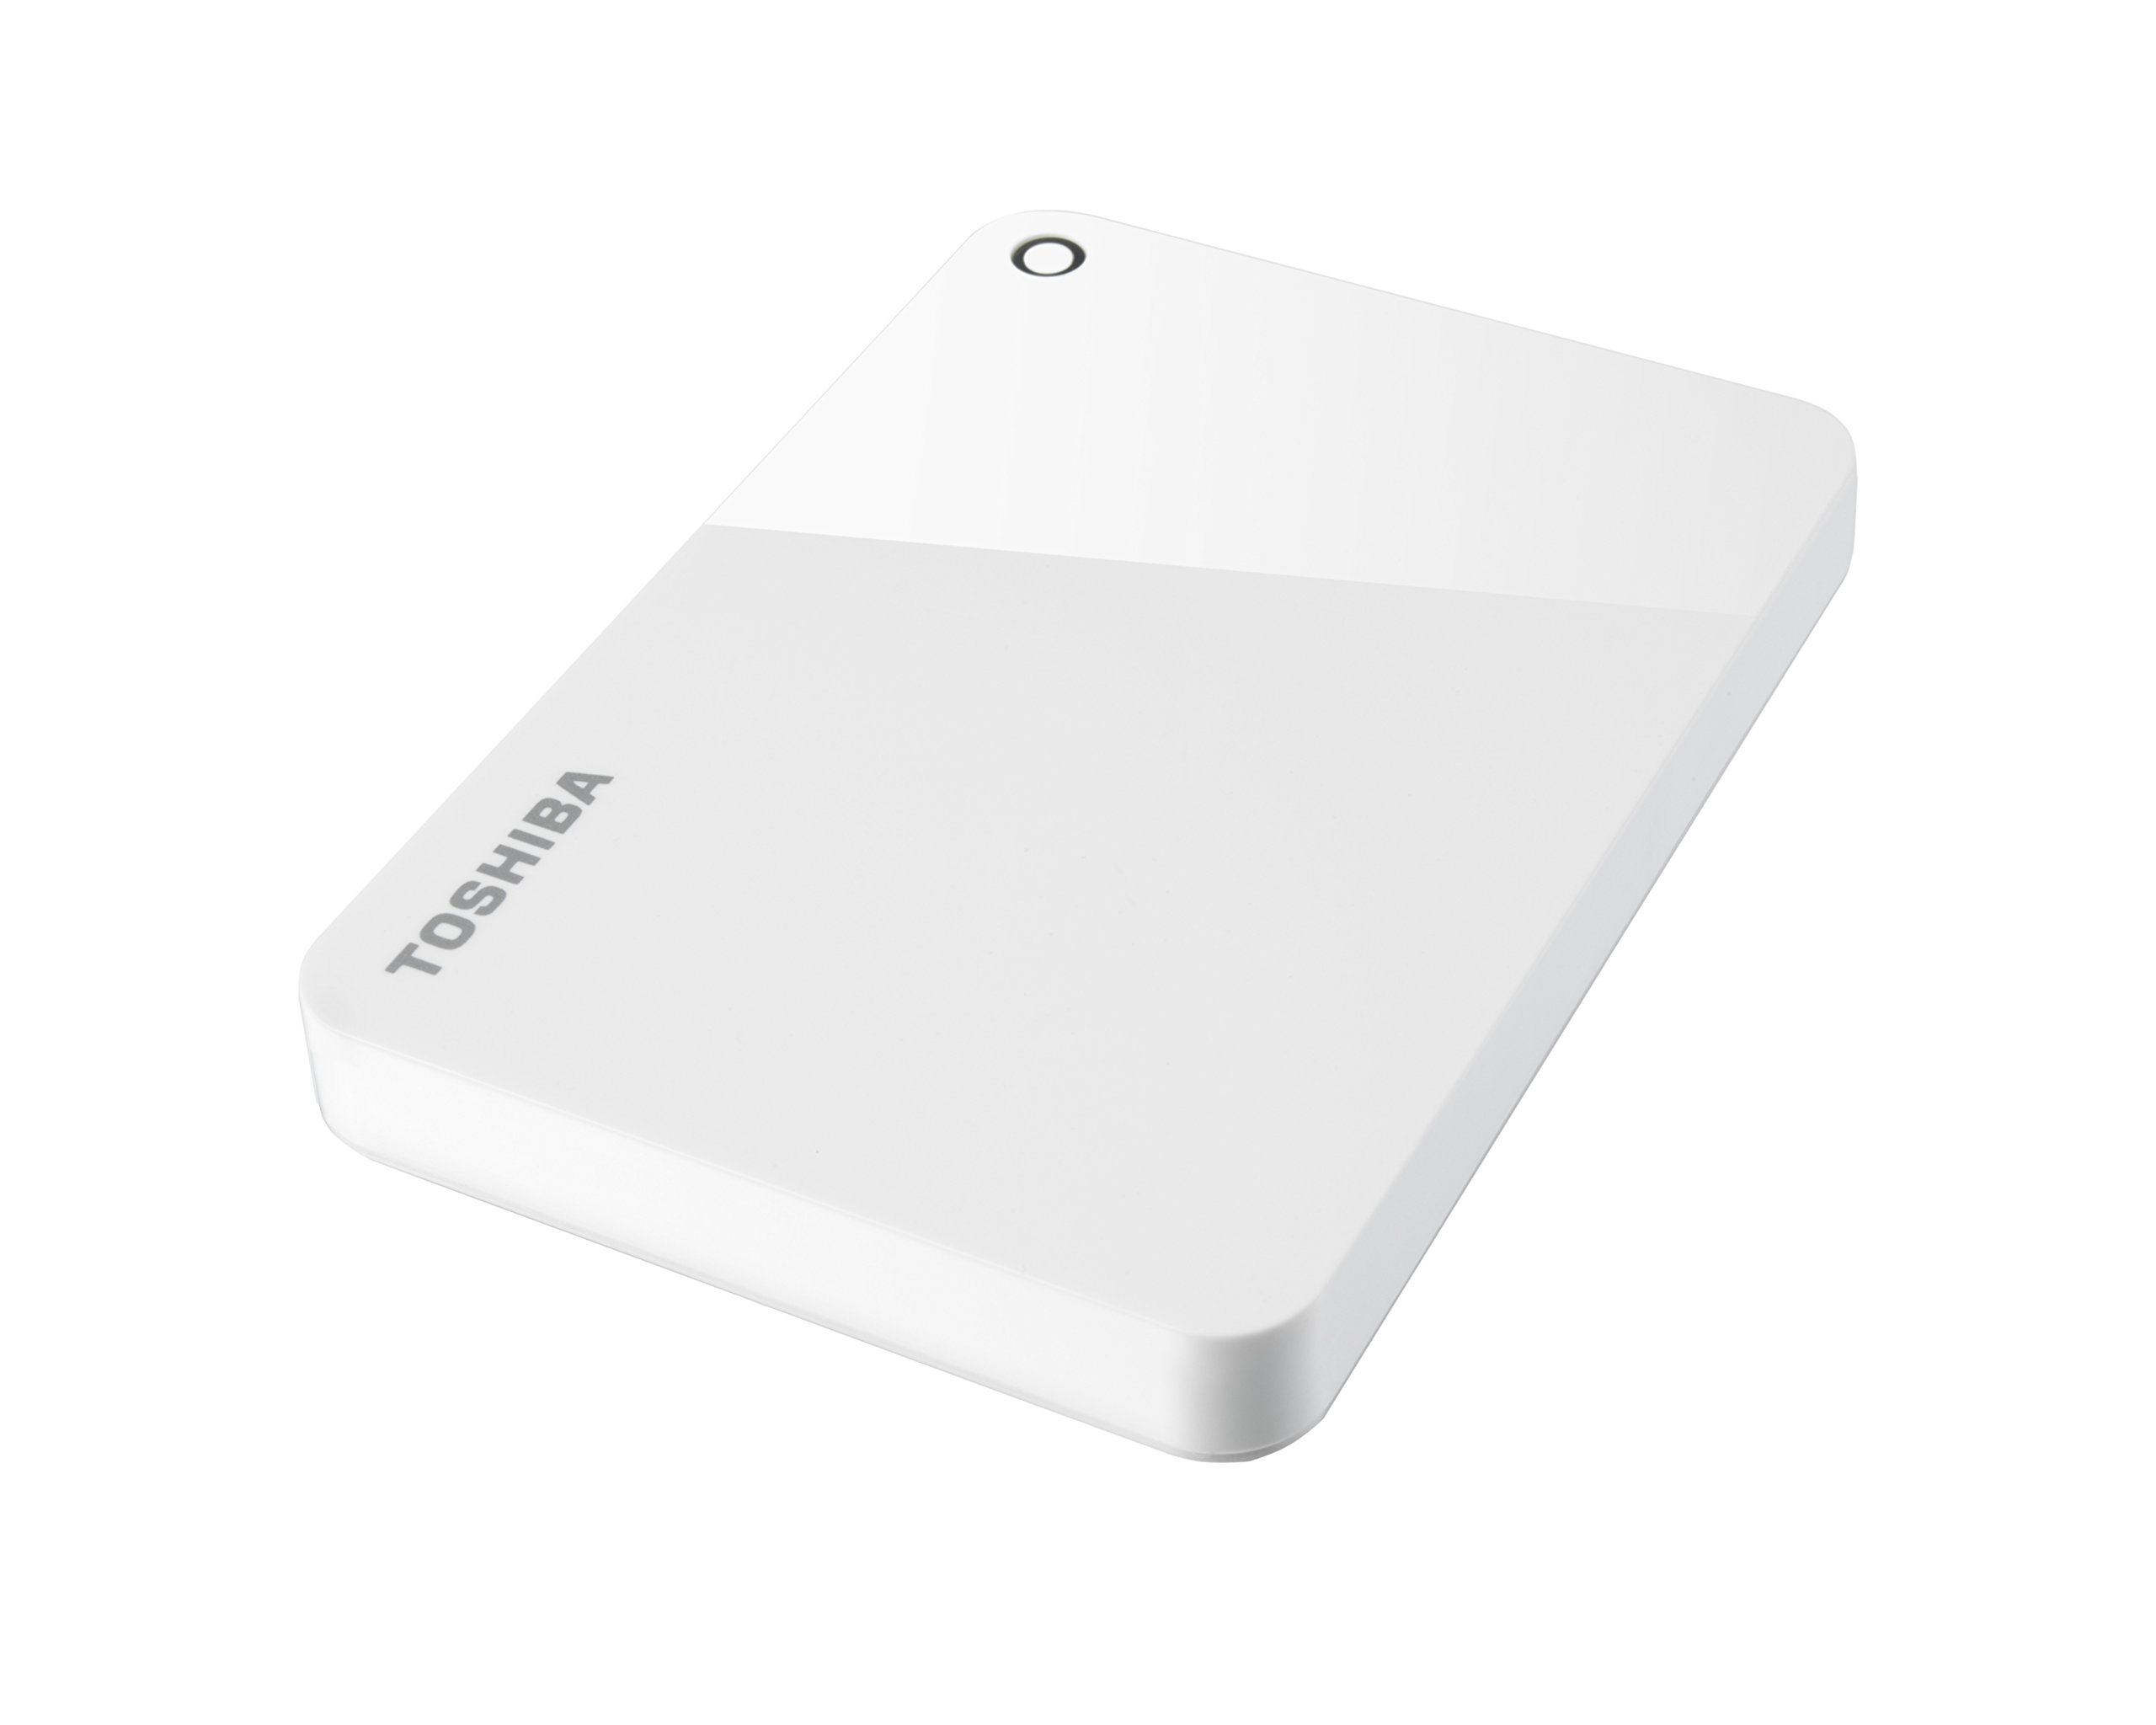 Toshiba Canvio Advance 2TB Portable External Hard Drive USB 3.0, White (HDTC920XW3AA) by Toshiba (Image #4)